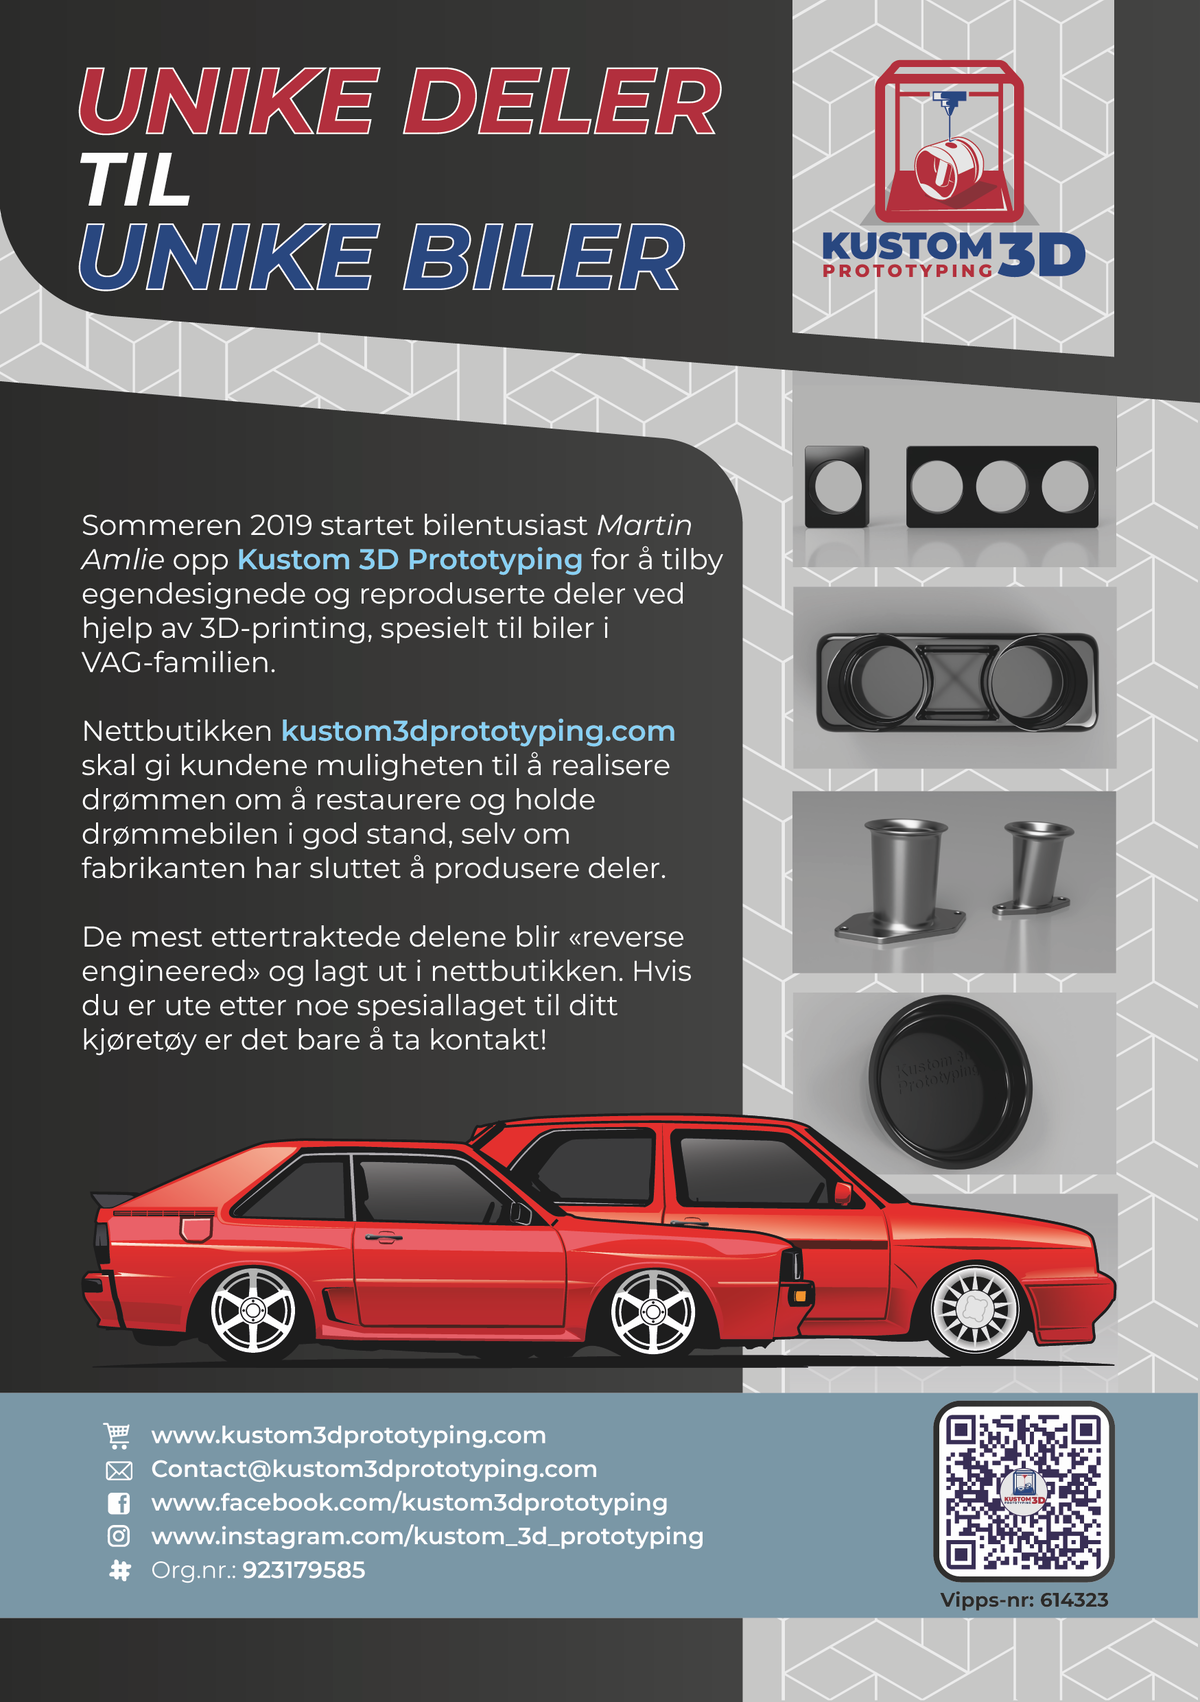 A5 flyer for Kustom 3D Prototyping -  3D printing car parts.